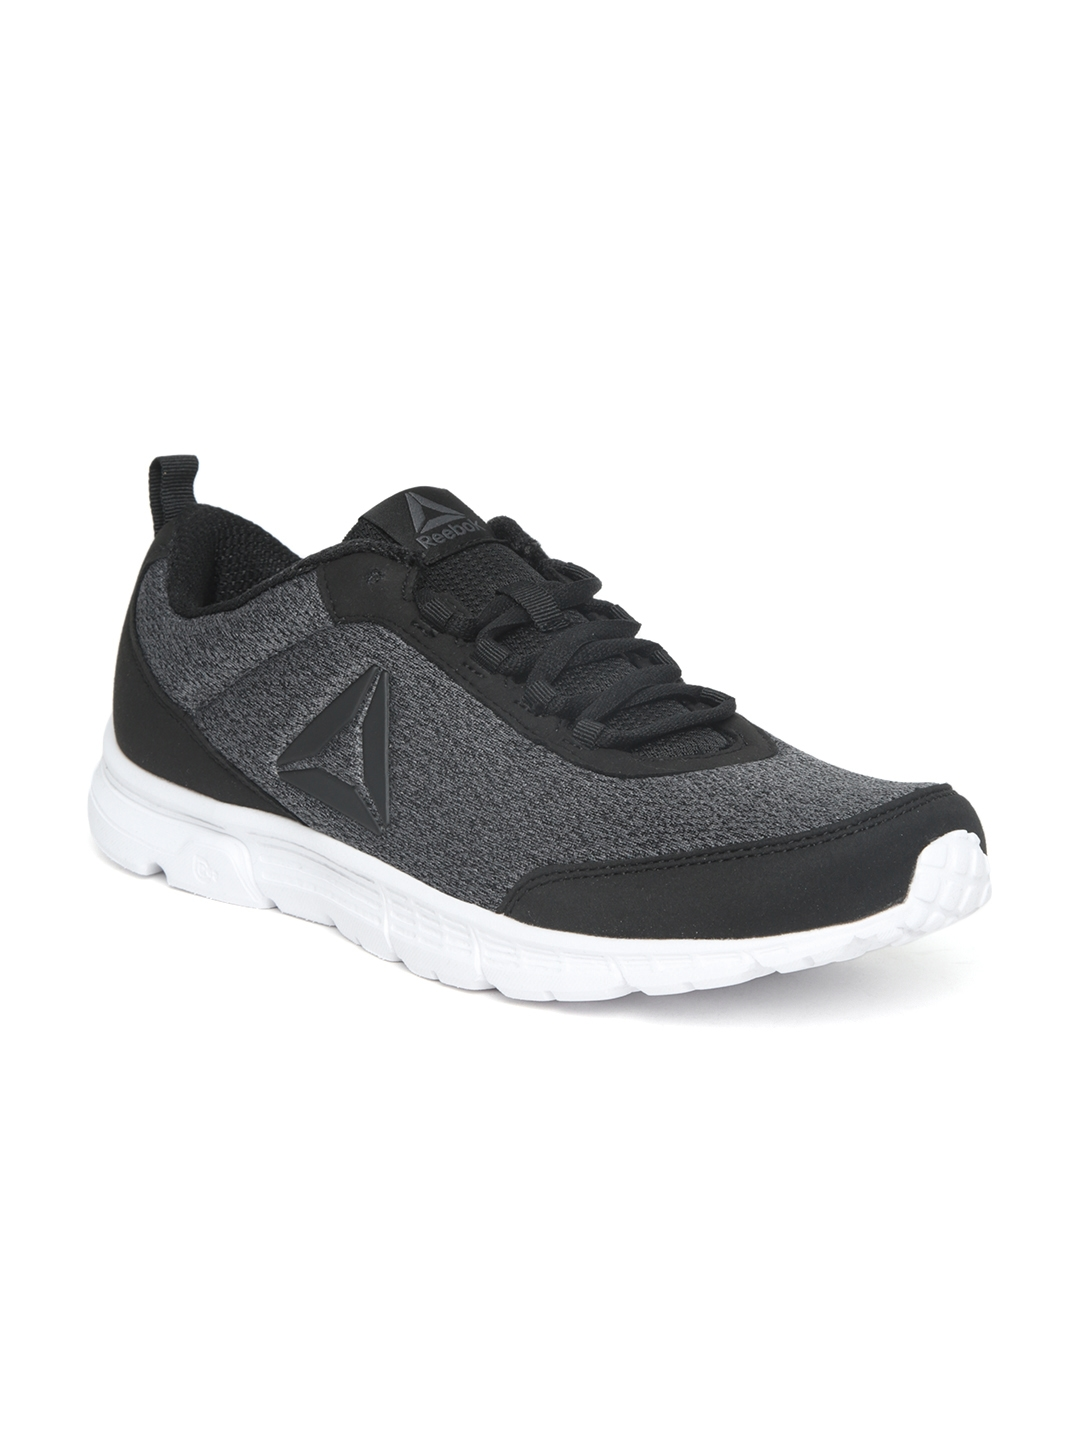 94034398d47a Buy Reebok Men Grey Speedlux 3.0 Running Shoes - Sports Shoes for ...